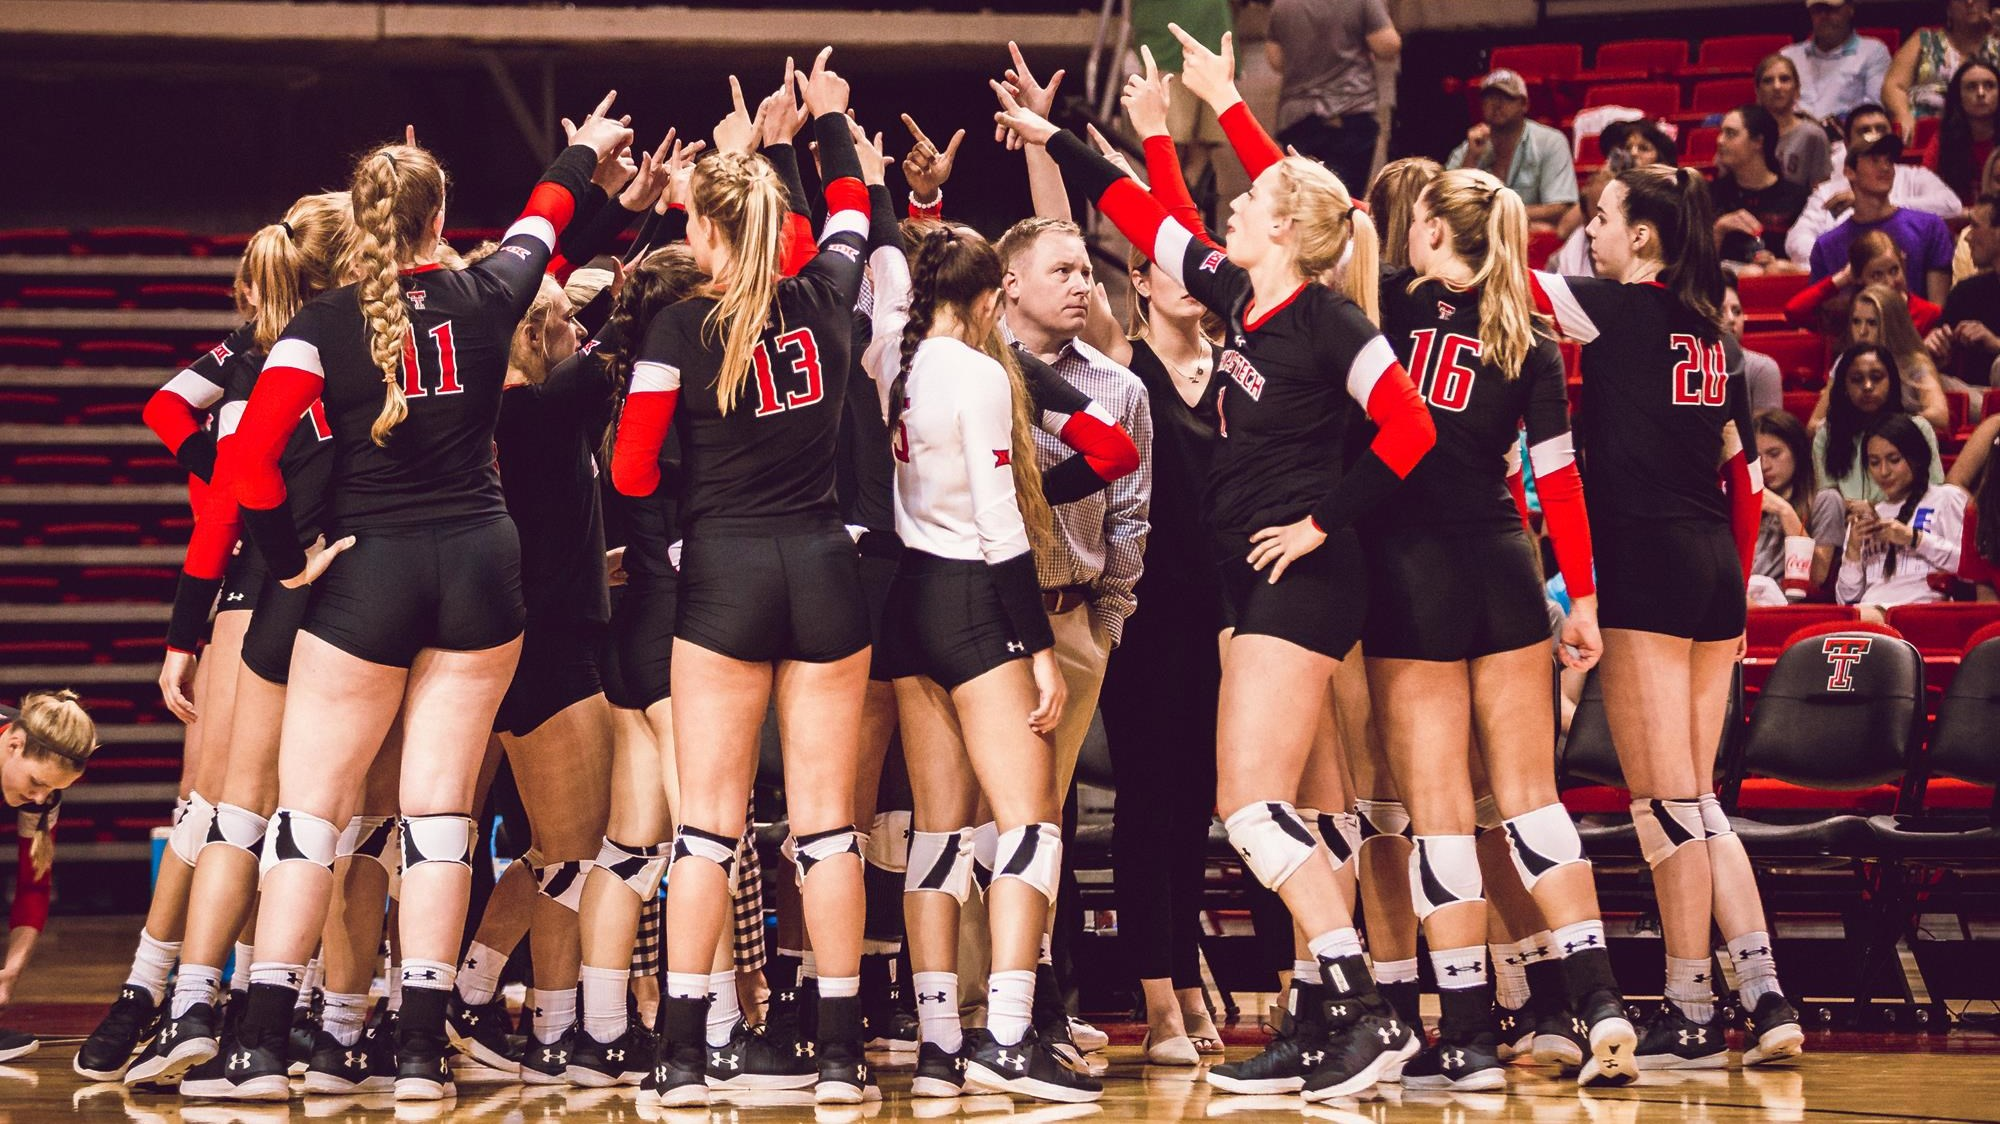 Graystone Reveals 2019 Volleyball Campaign Texas Tech Red Raiders